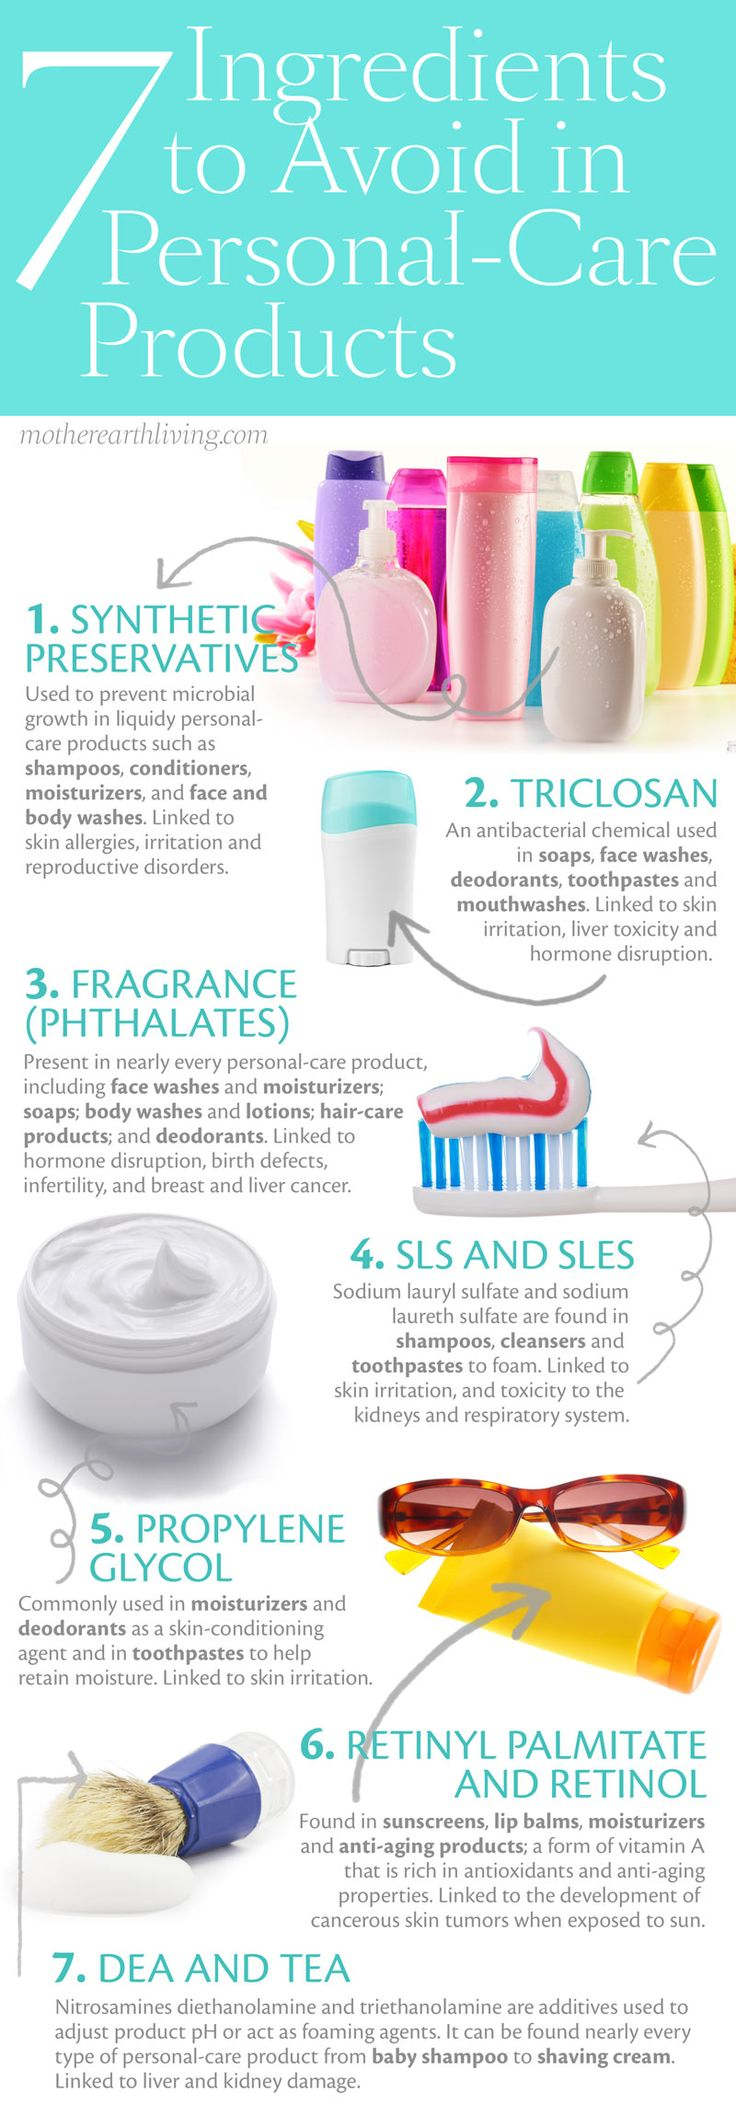 7 Ingredients to Avoid in Personal-Care Products #infographic.  Find out from @RodaleNews Online Editor @LeahZerbe how these chemicals can also make you fat! http://www.smarthealthtalk.com/gmos-phthalates-antibiotics-making-us-fat.html